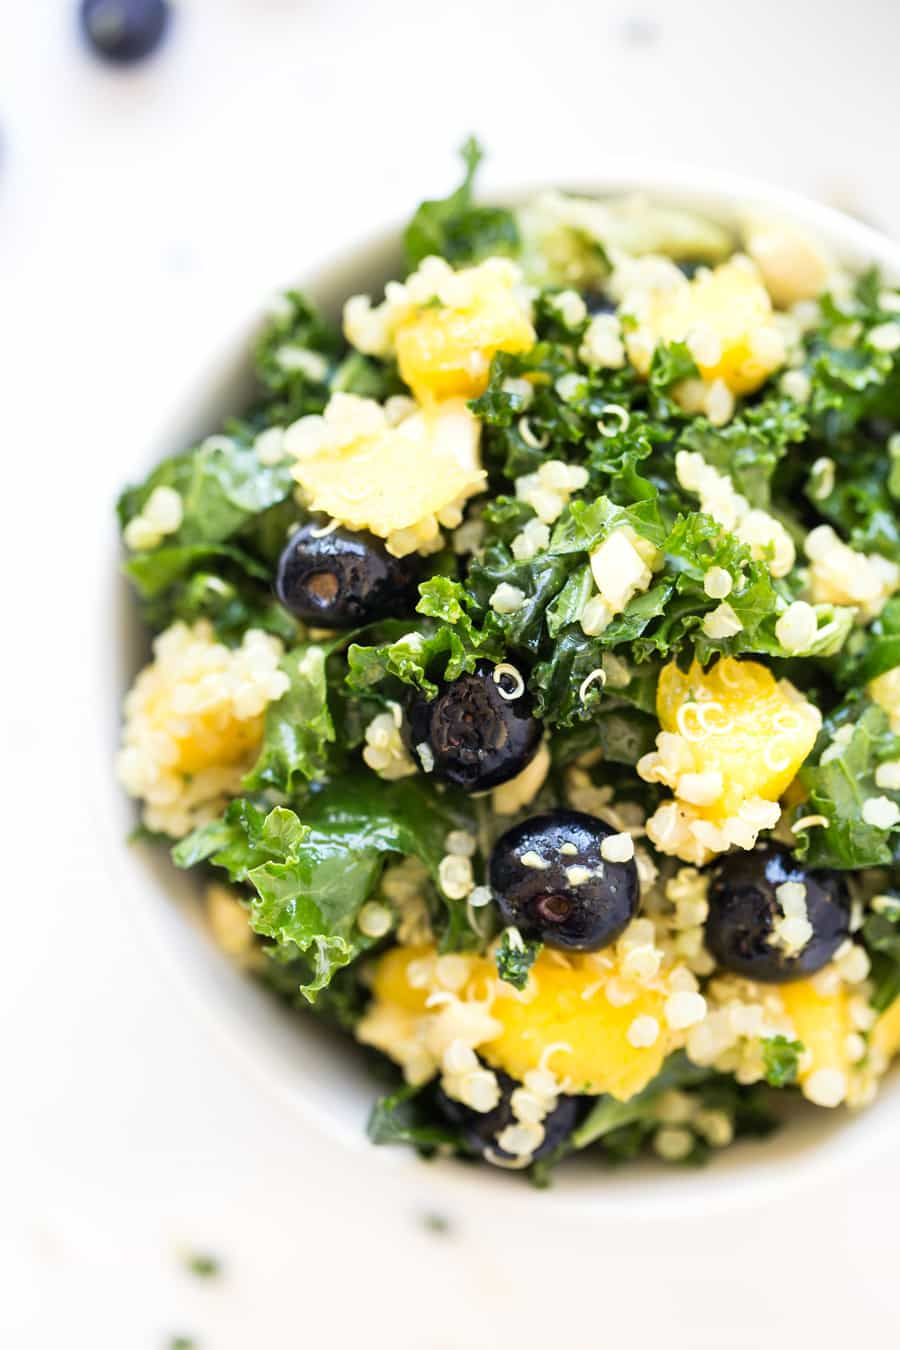 Tropical Kale & Quinoa Power Salad -- full of protein, antioxidants and detoxifying ingredients!